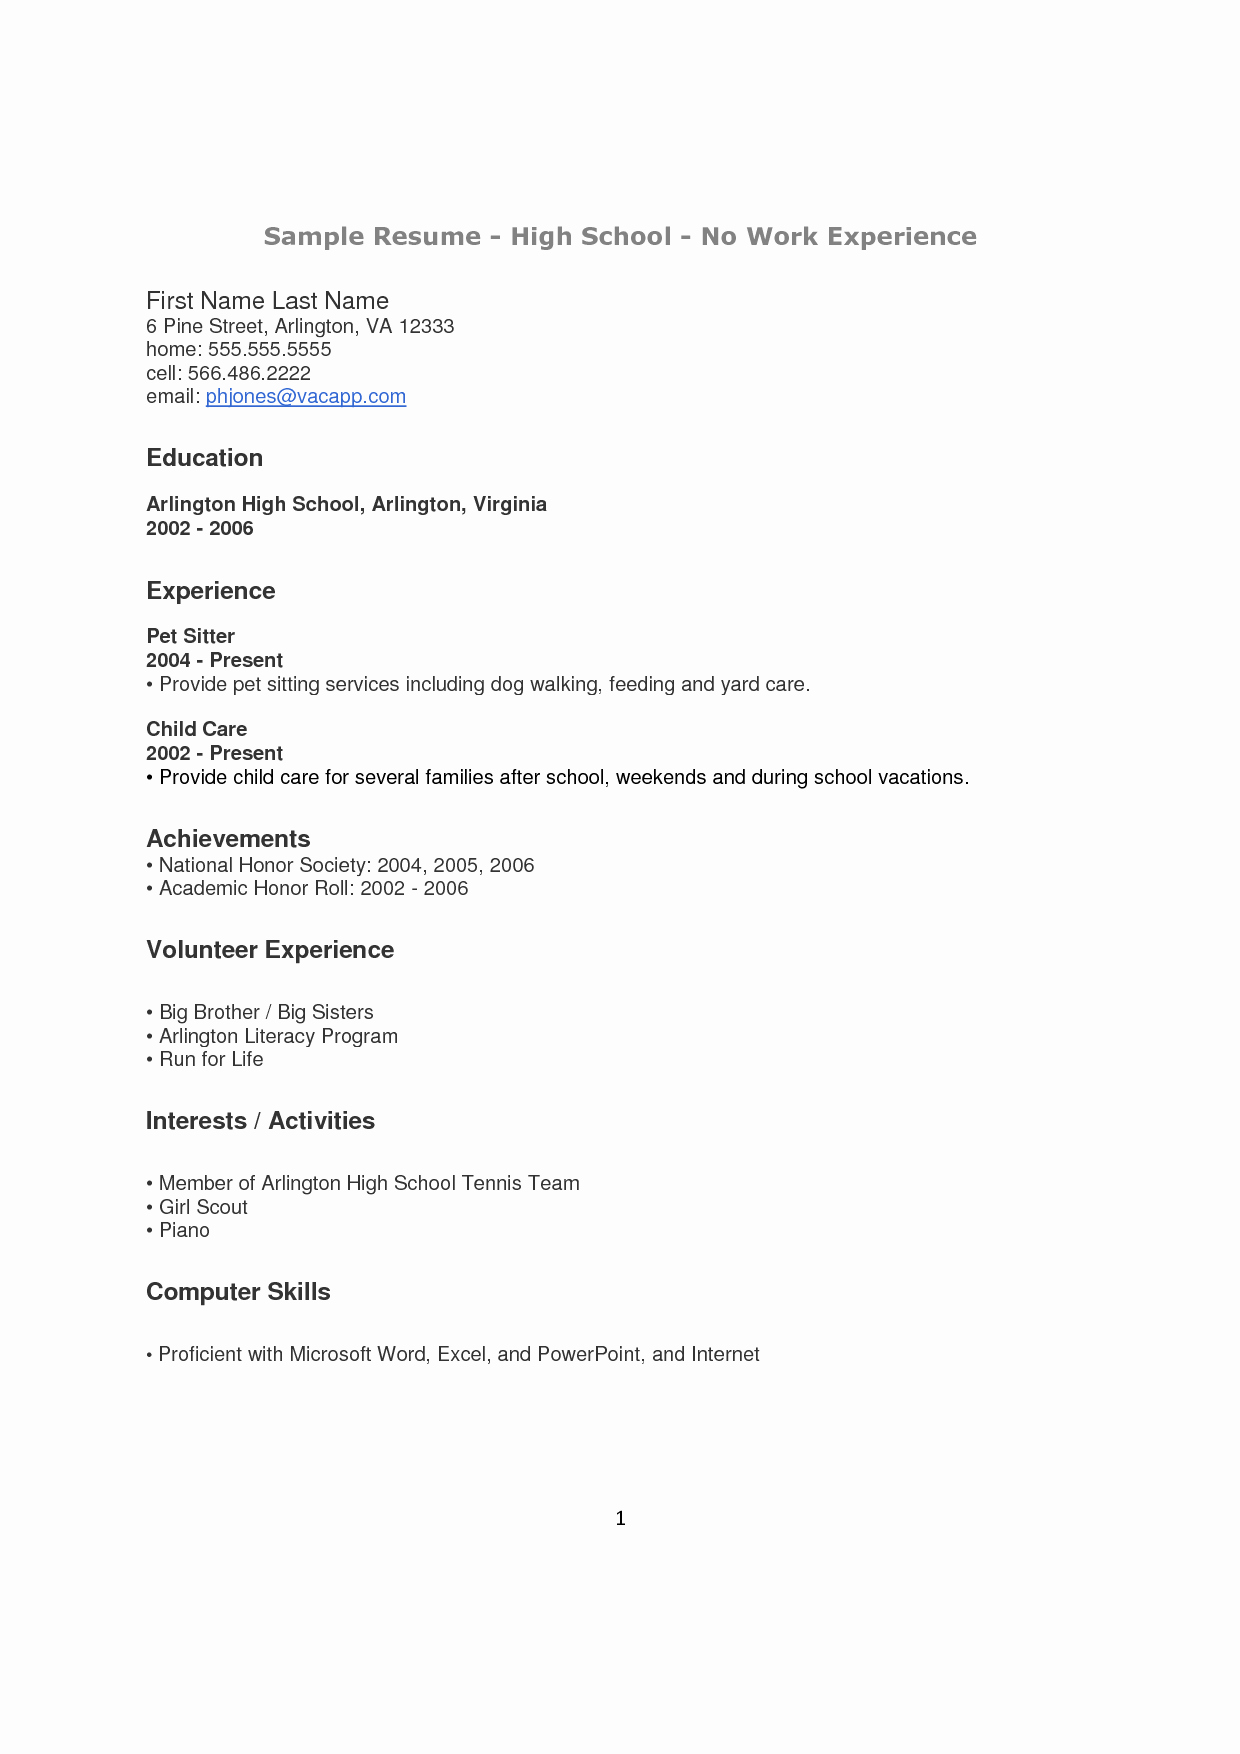 High School Principal Resume New How to Make A Resume for A Highschool Student with No